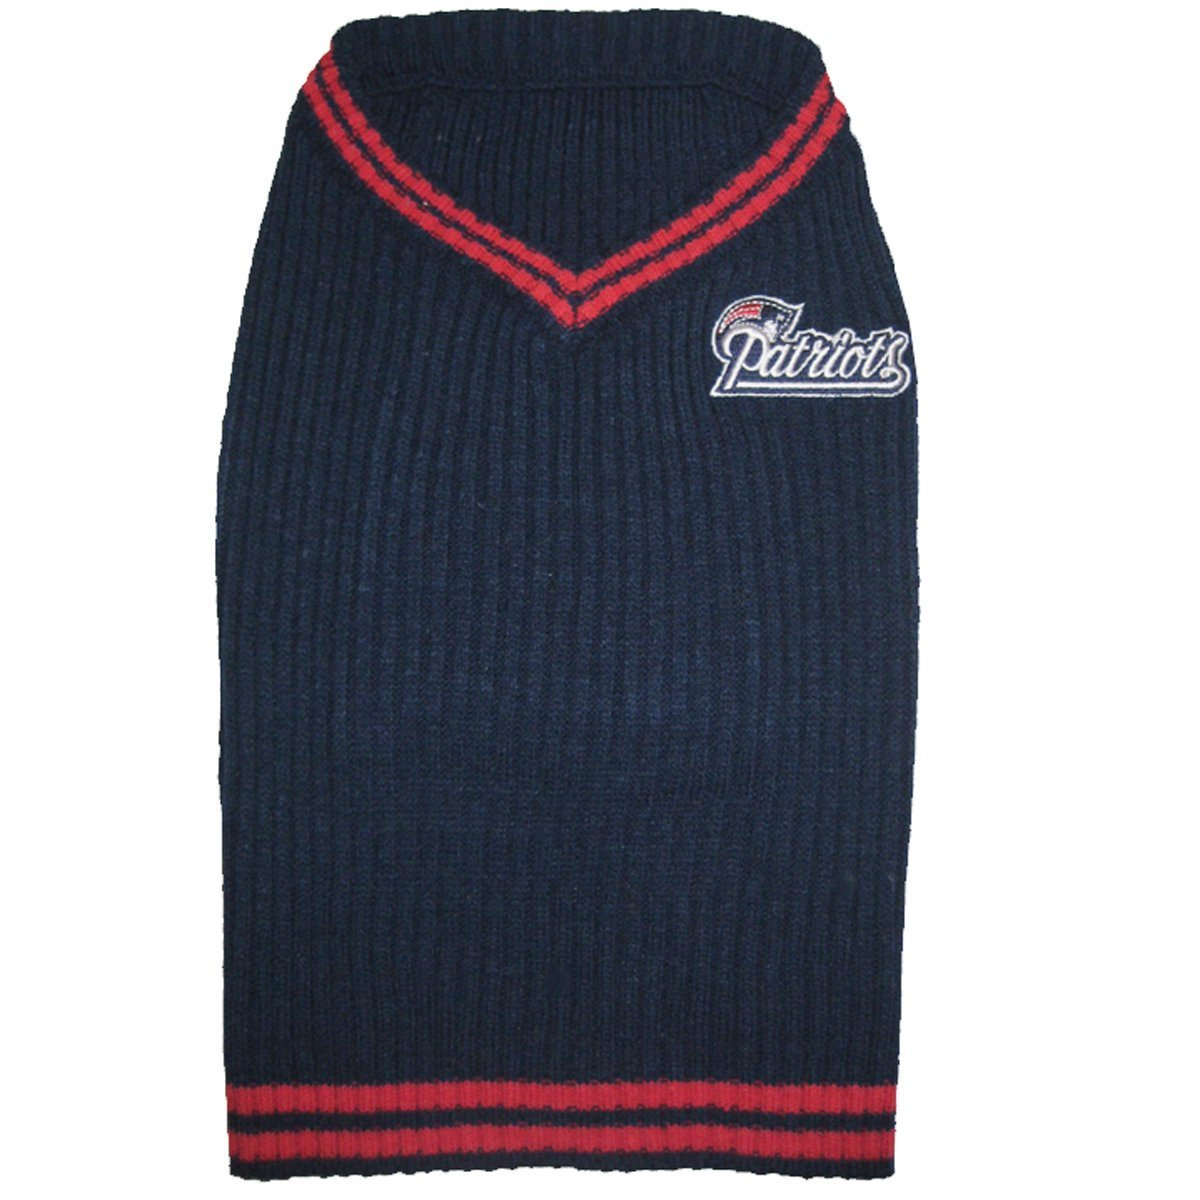 NEW ENGLAND PATRIOTS Dog Pet Embroidered Sweater ★ ALL SIZES ★ Licensed NFL (Medium) by PETS FIRST